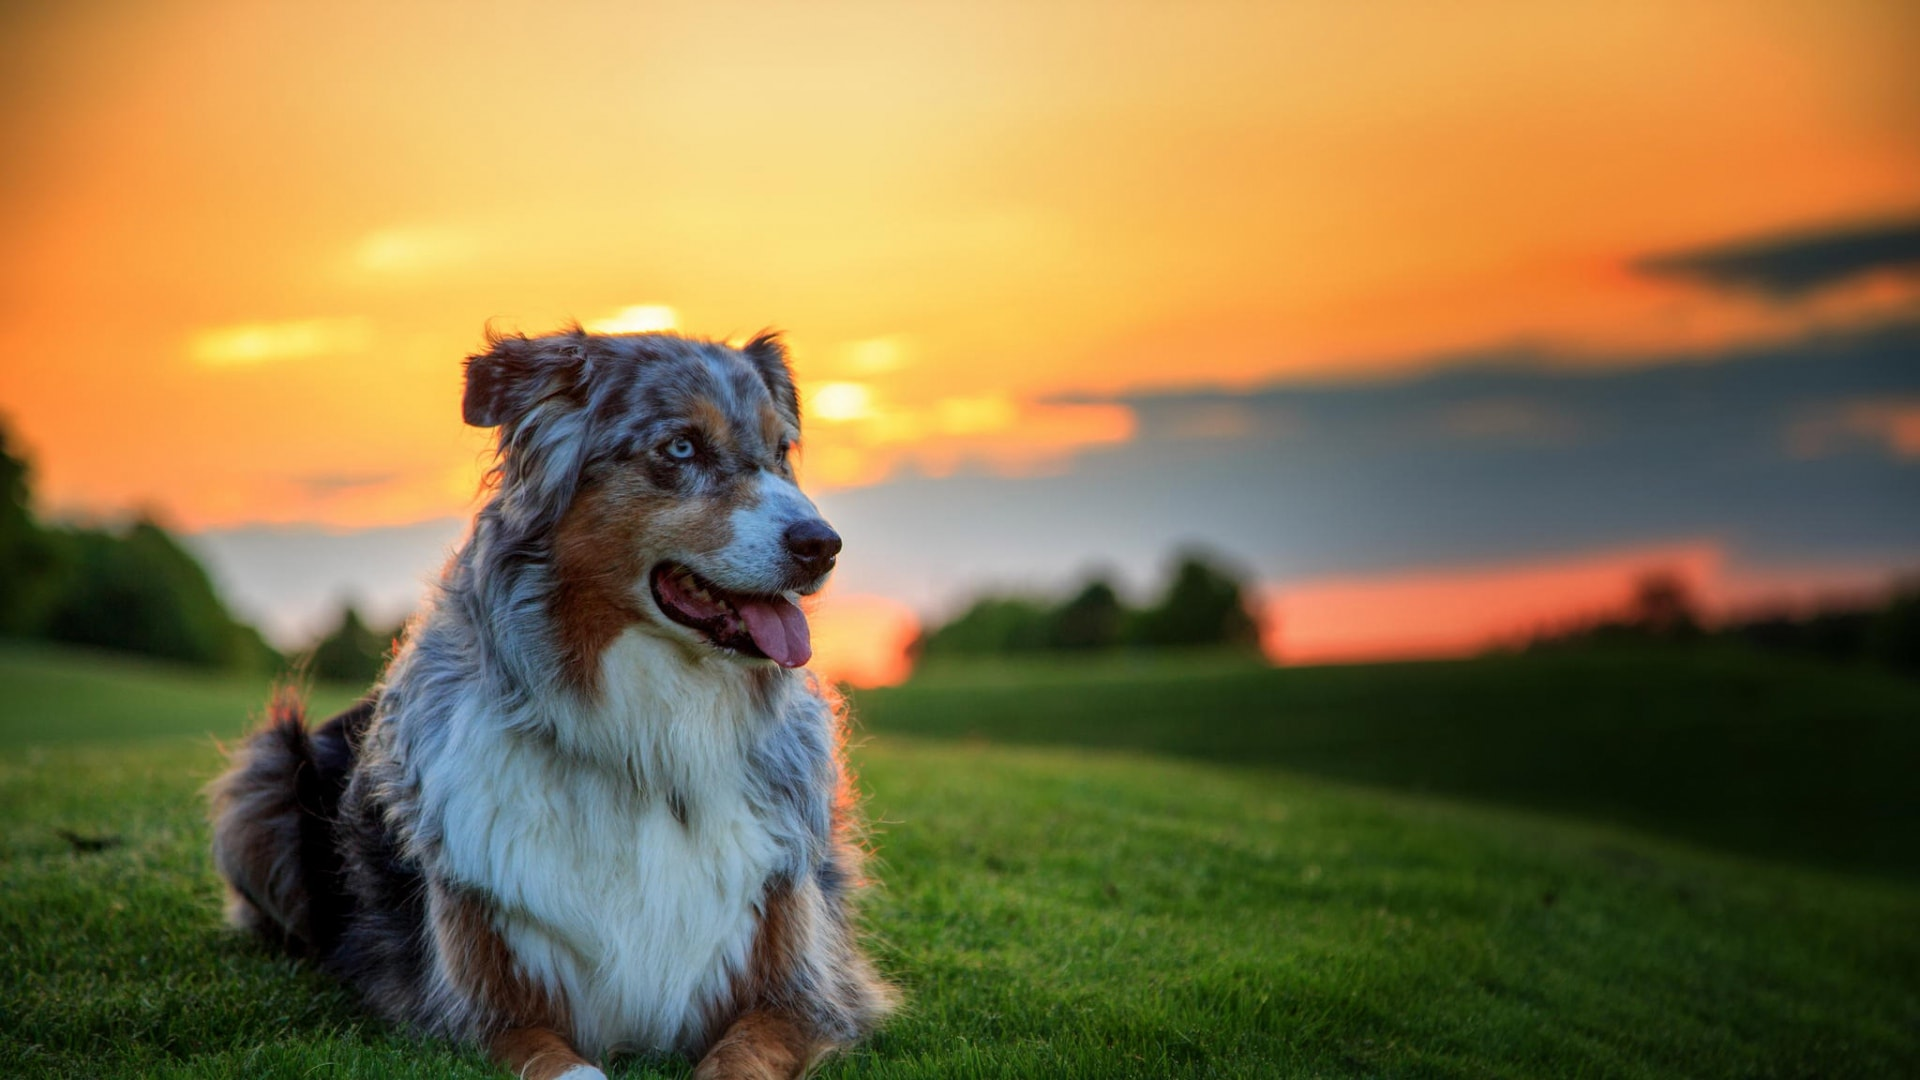 Australian Shepherd HQ wallpapers